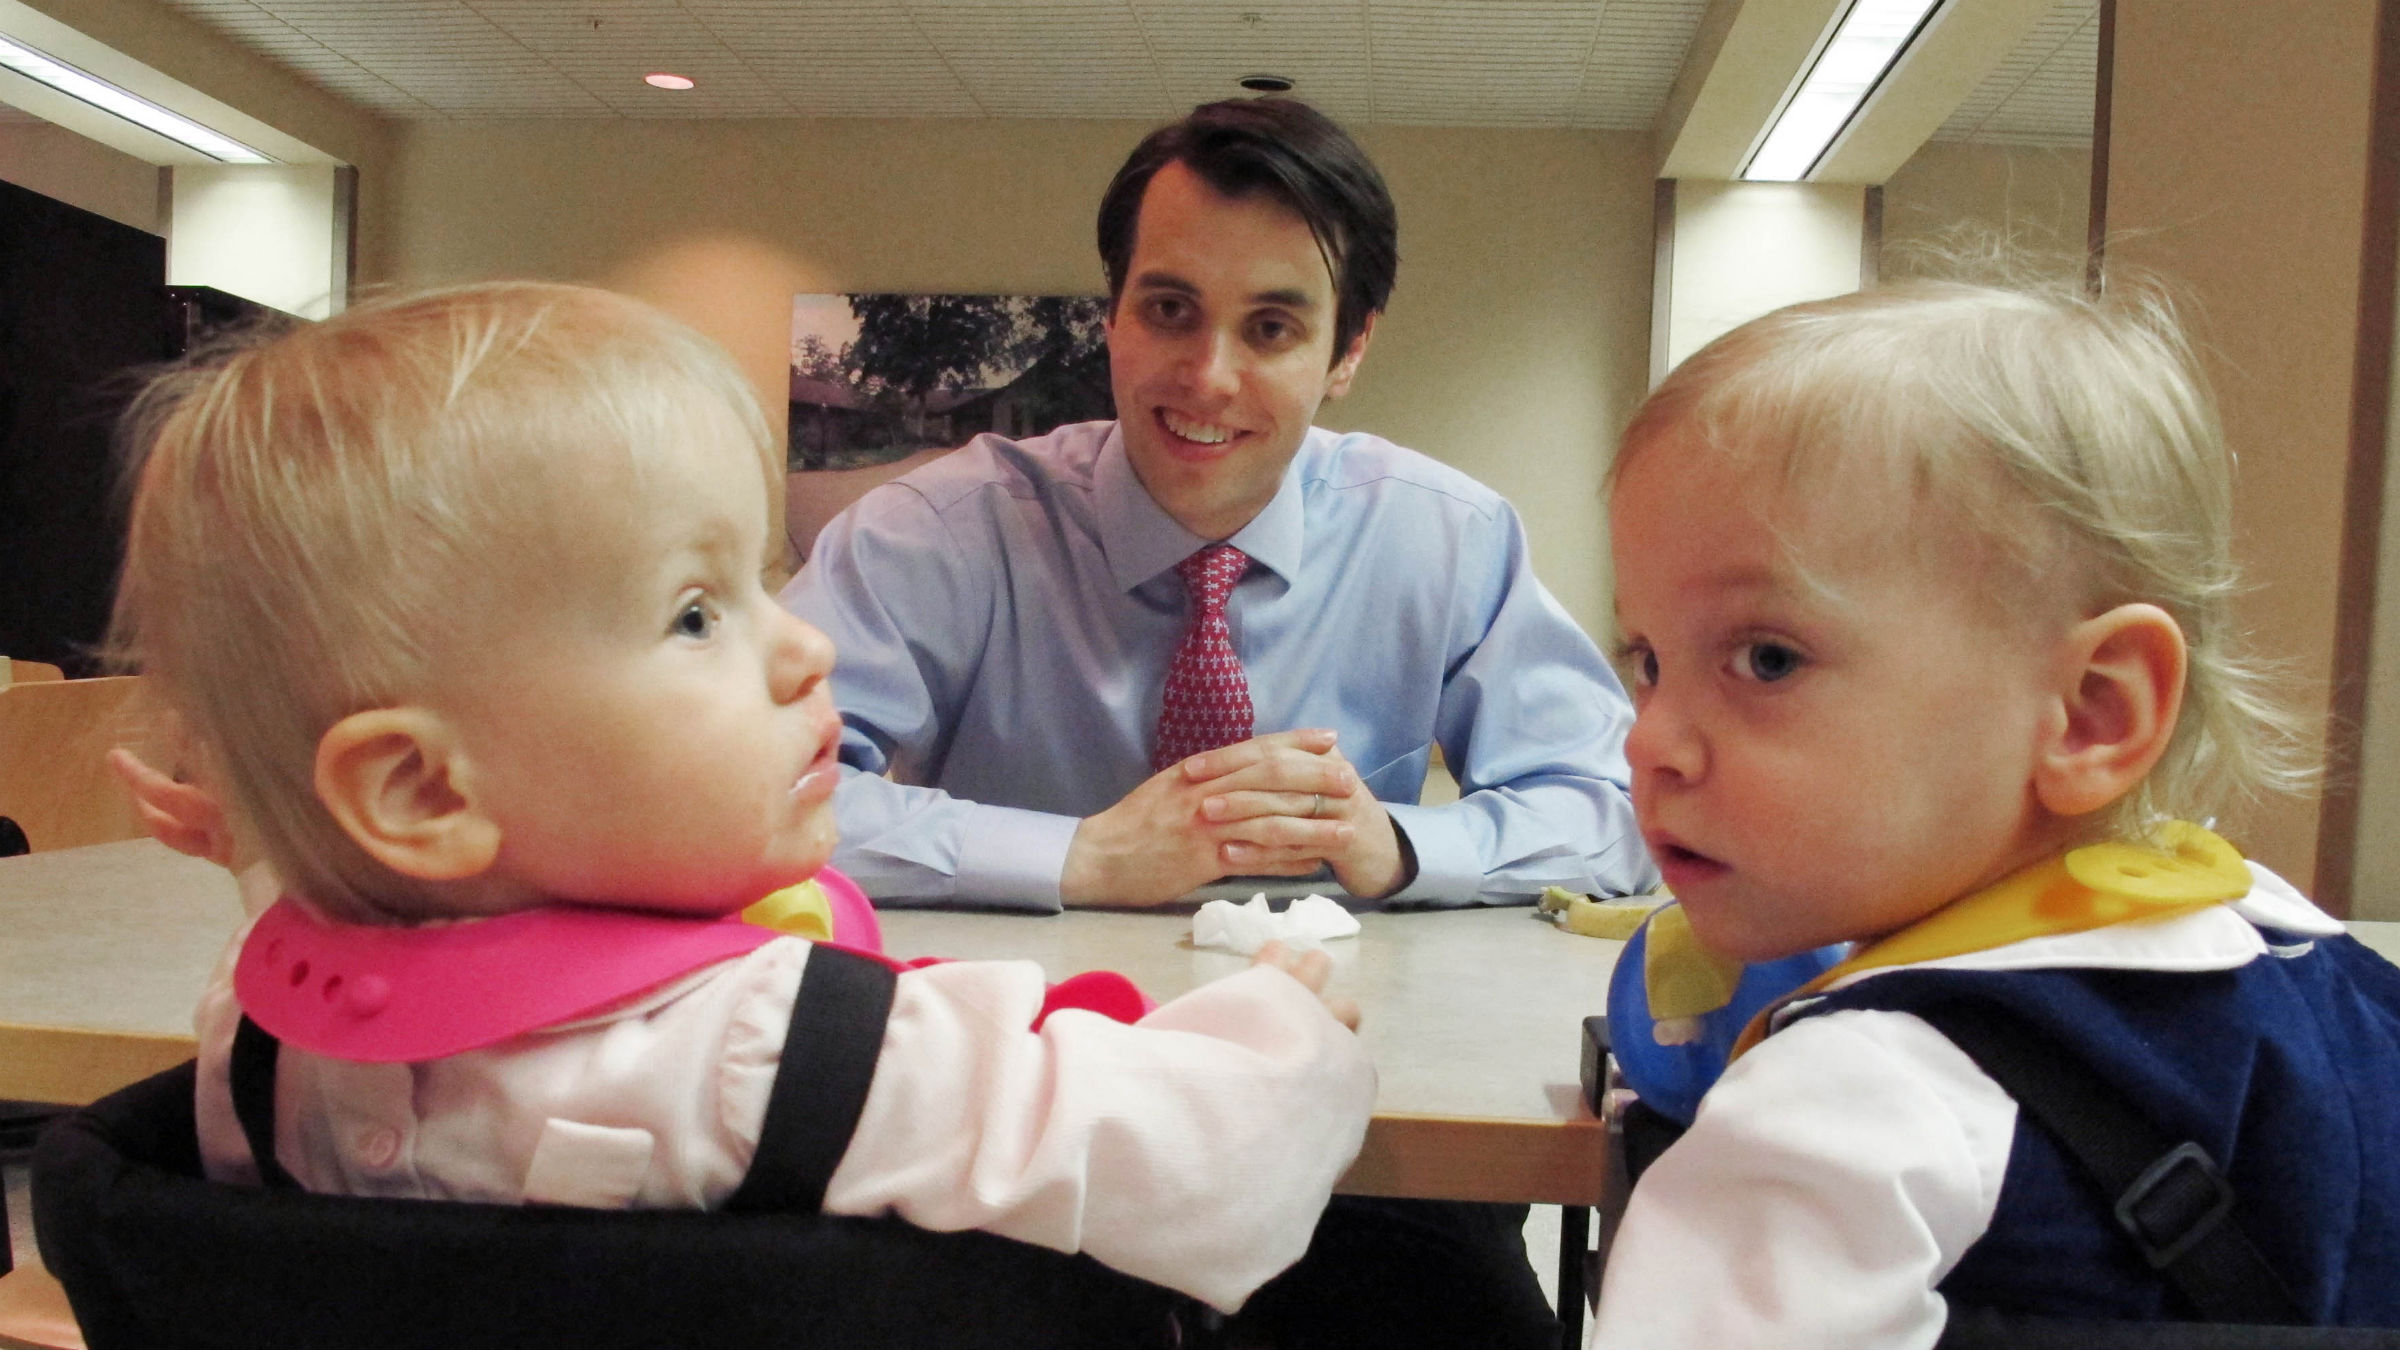 Man looks expectantly at twin babies at table